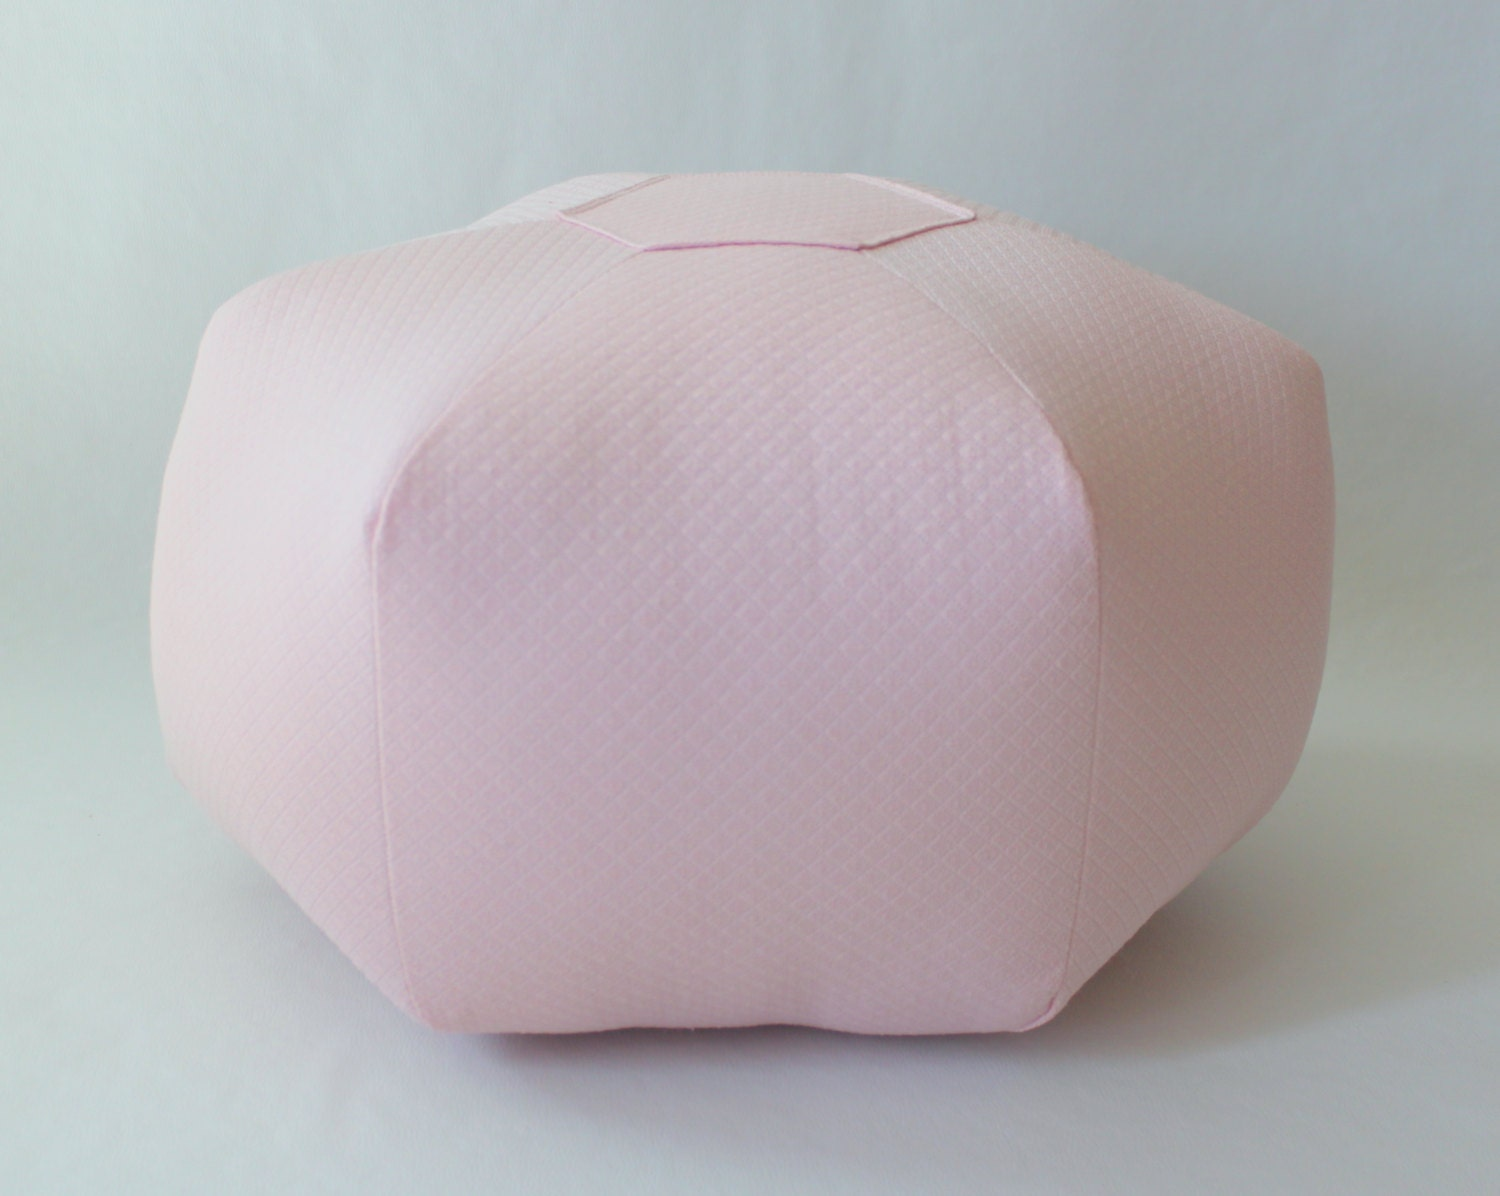 Light Pink Floor Pillows : 18 Pouf Ottoman Floor Pillow Solid Light Pink